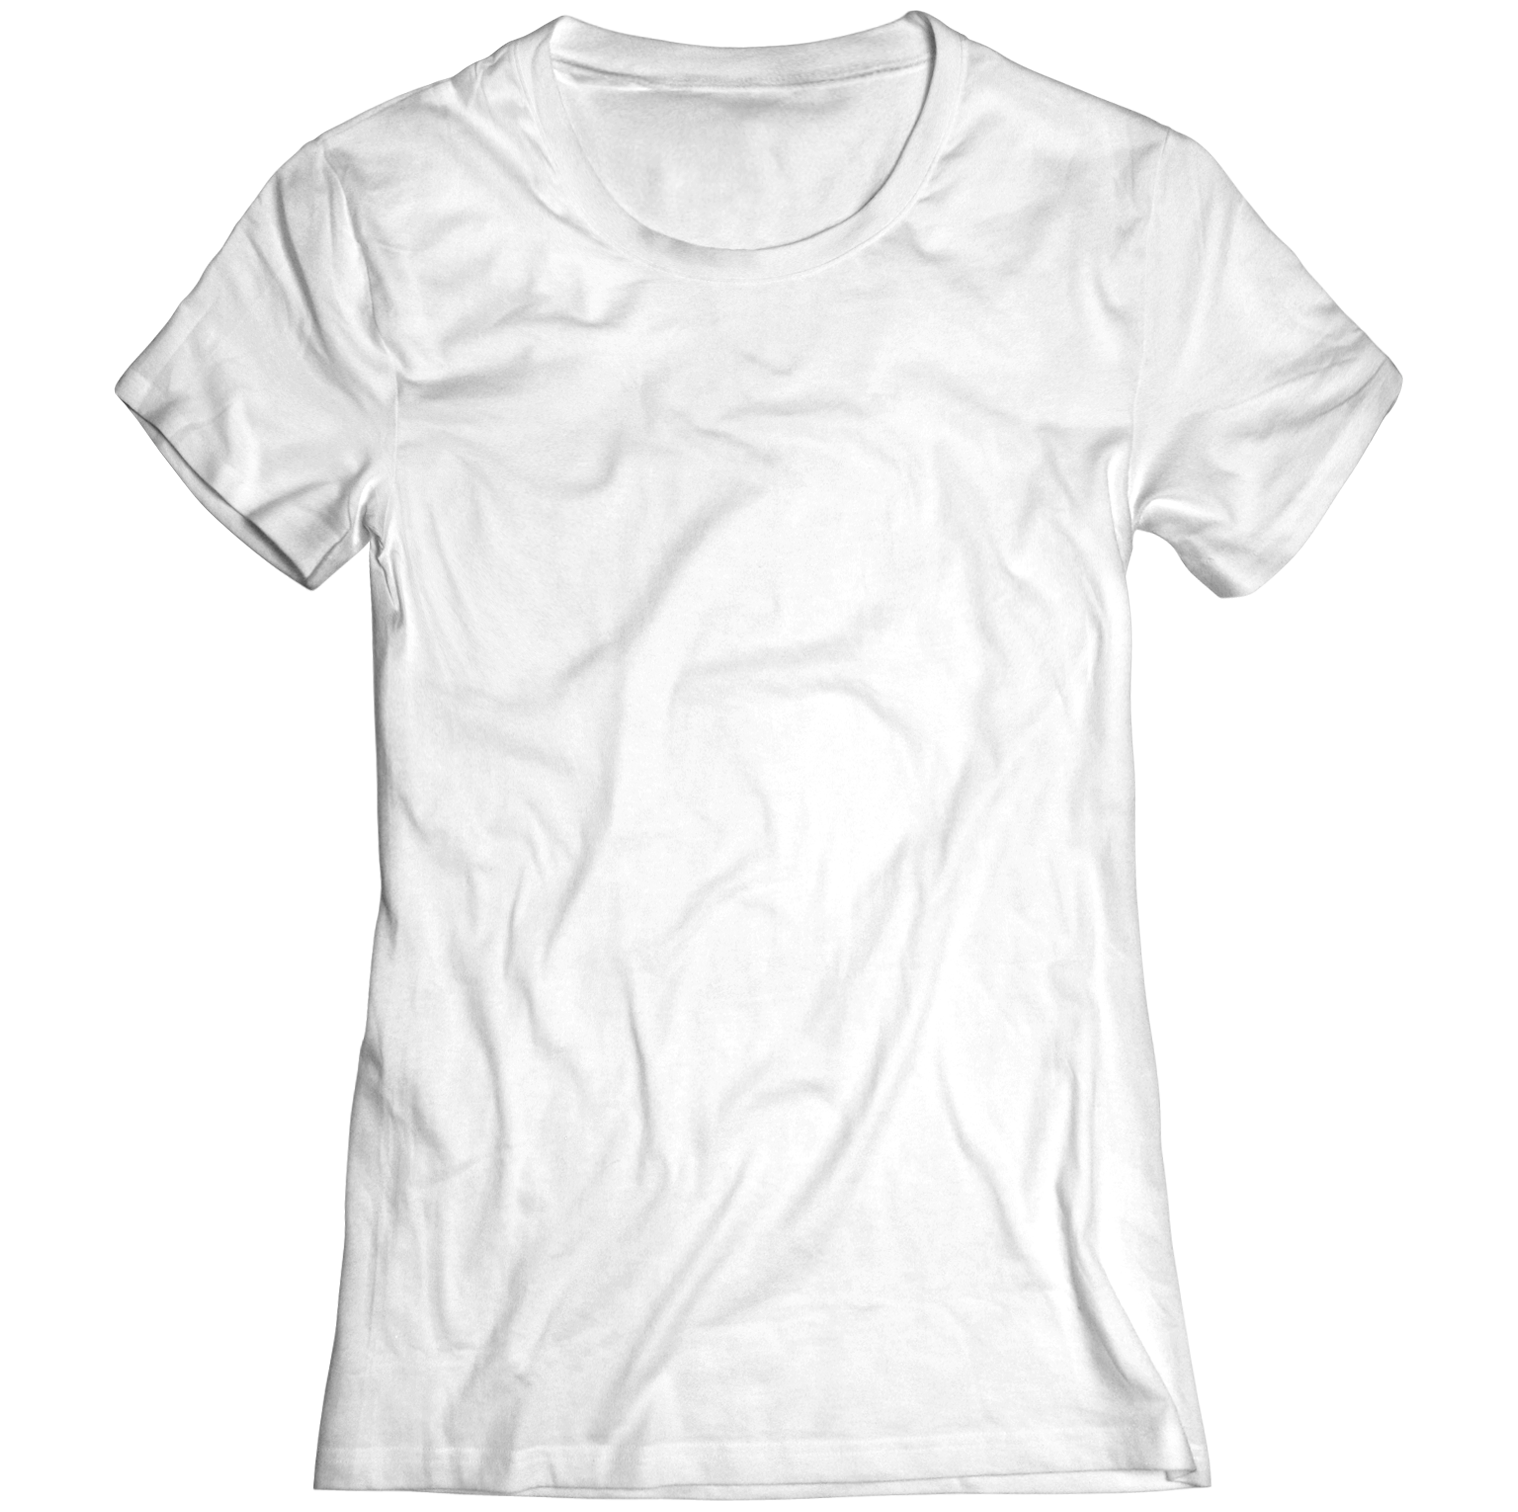 An image of a white t-shirt